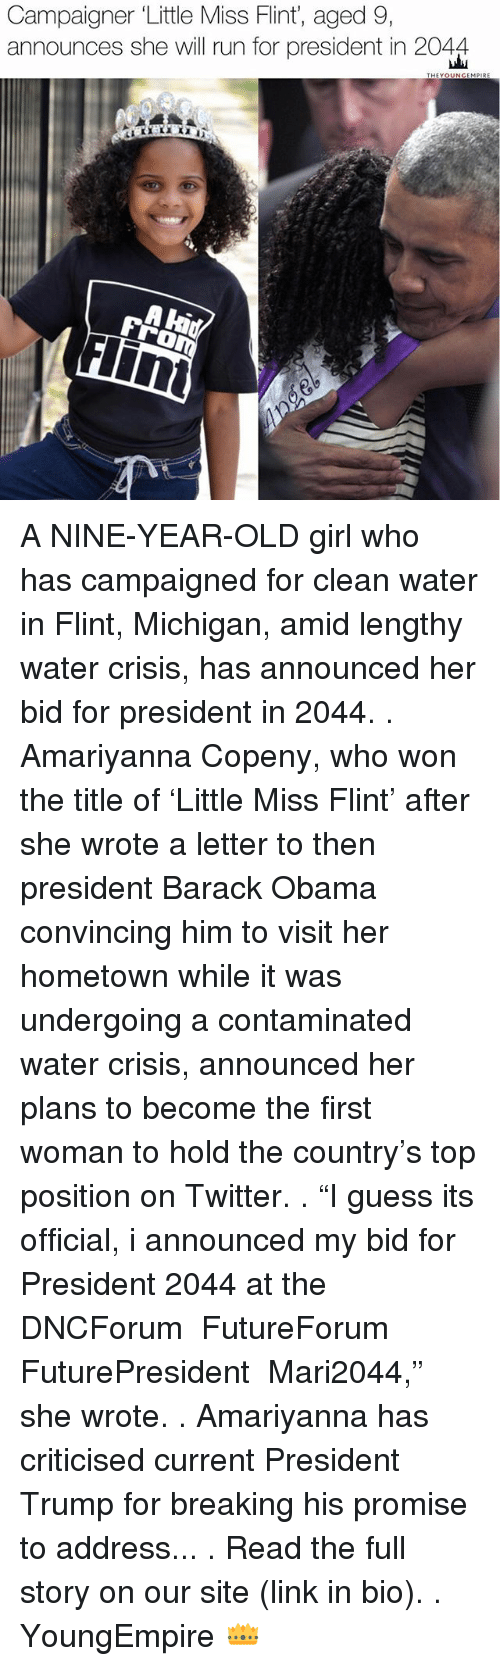 "little miss: Campaigner Little Miss Flint, aged 9,  announces she will run for president in 2044  THEYO  MPRE A NINE-YEAR-OLD girl who has campaigned for clean water in Flint, Michigan, amid lengthy water crisis, has announced her bid for president in 2044. . Amariyanna Copeny, who won the title of 'Little Miss Flint' after she wrote a letter to then president Barack Obama convincing him to visit her hometown while it was undergoing a contaminated water crisis, announced her plans to become the first woman to hold the country's top position on Twitter. . ""I guess its official, i announced my bid for President 2044 at the ‪ DNCForum‬ ‪ FutureForum‬ ‪ FuturePresident‬ ‪ Mari2044,"" she wrote.‬ . ‪Amariyanna has criticised current ‬President Trump for breaking his promise to address... . Read the full story on our site (link in bio). . YoungEmpire 👑"